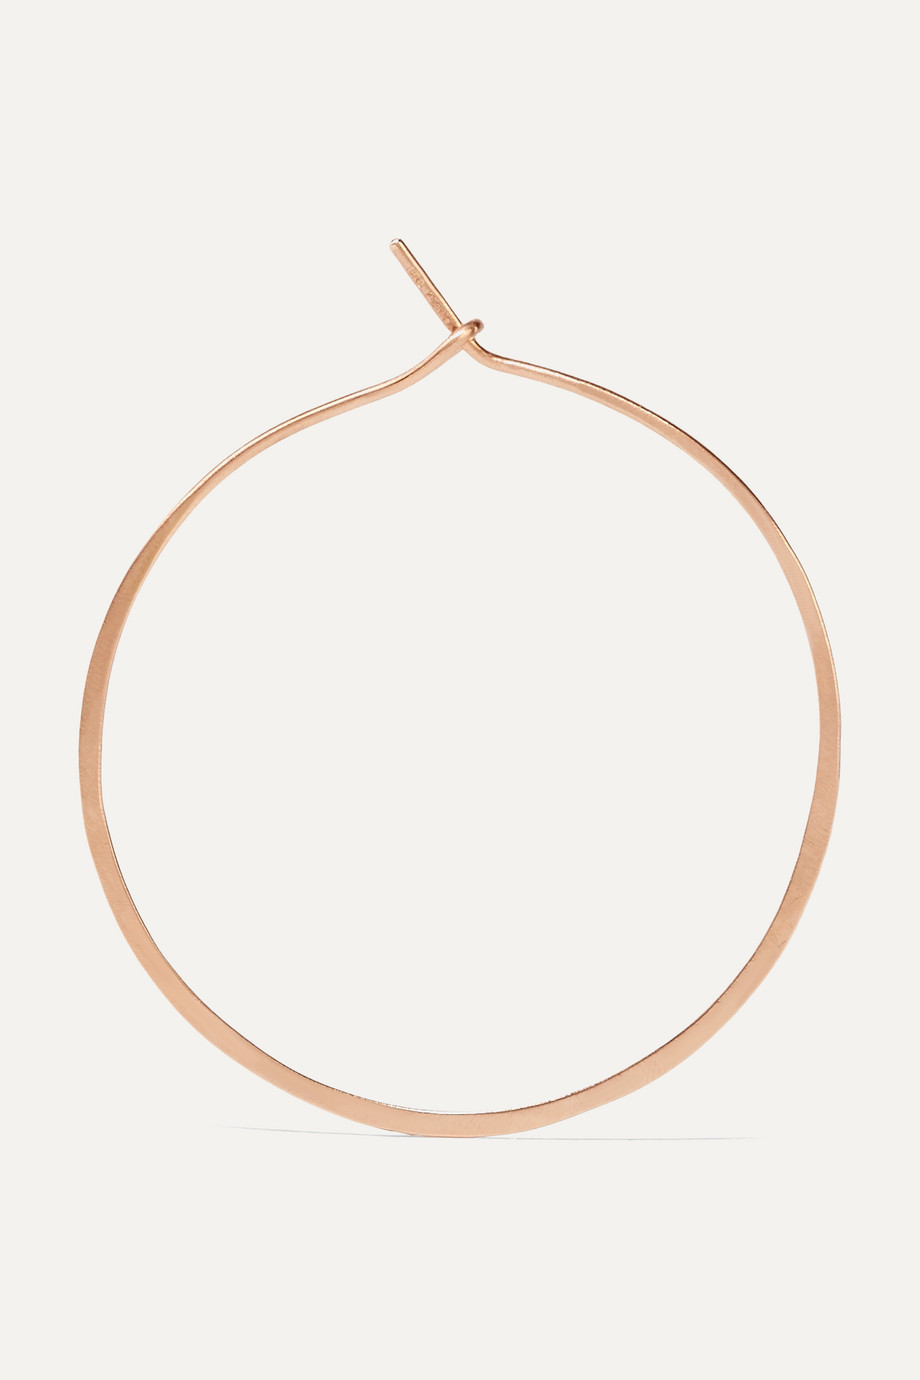 Brooke Gregson 18-karat rose gold hoop earrings